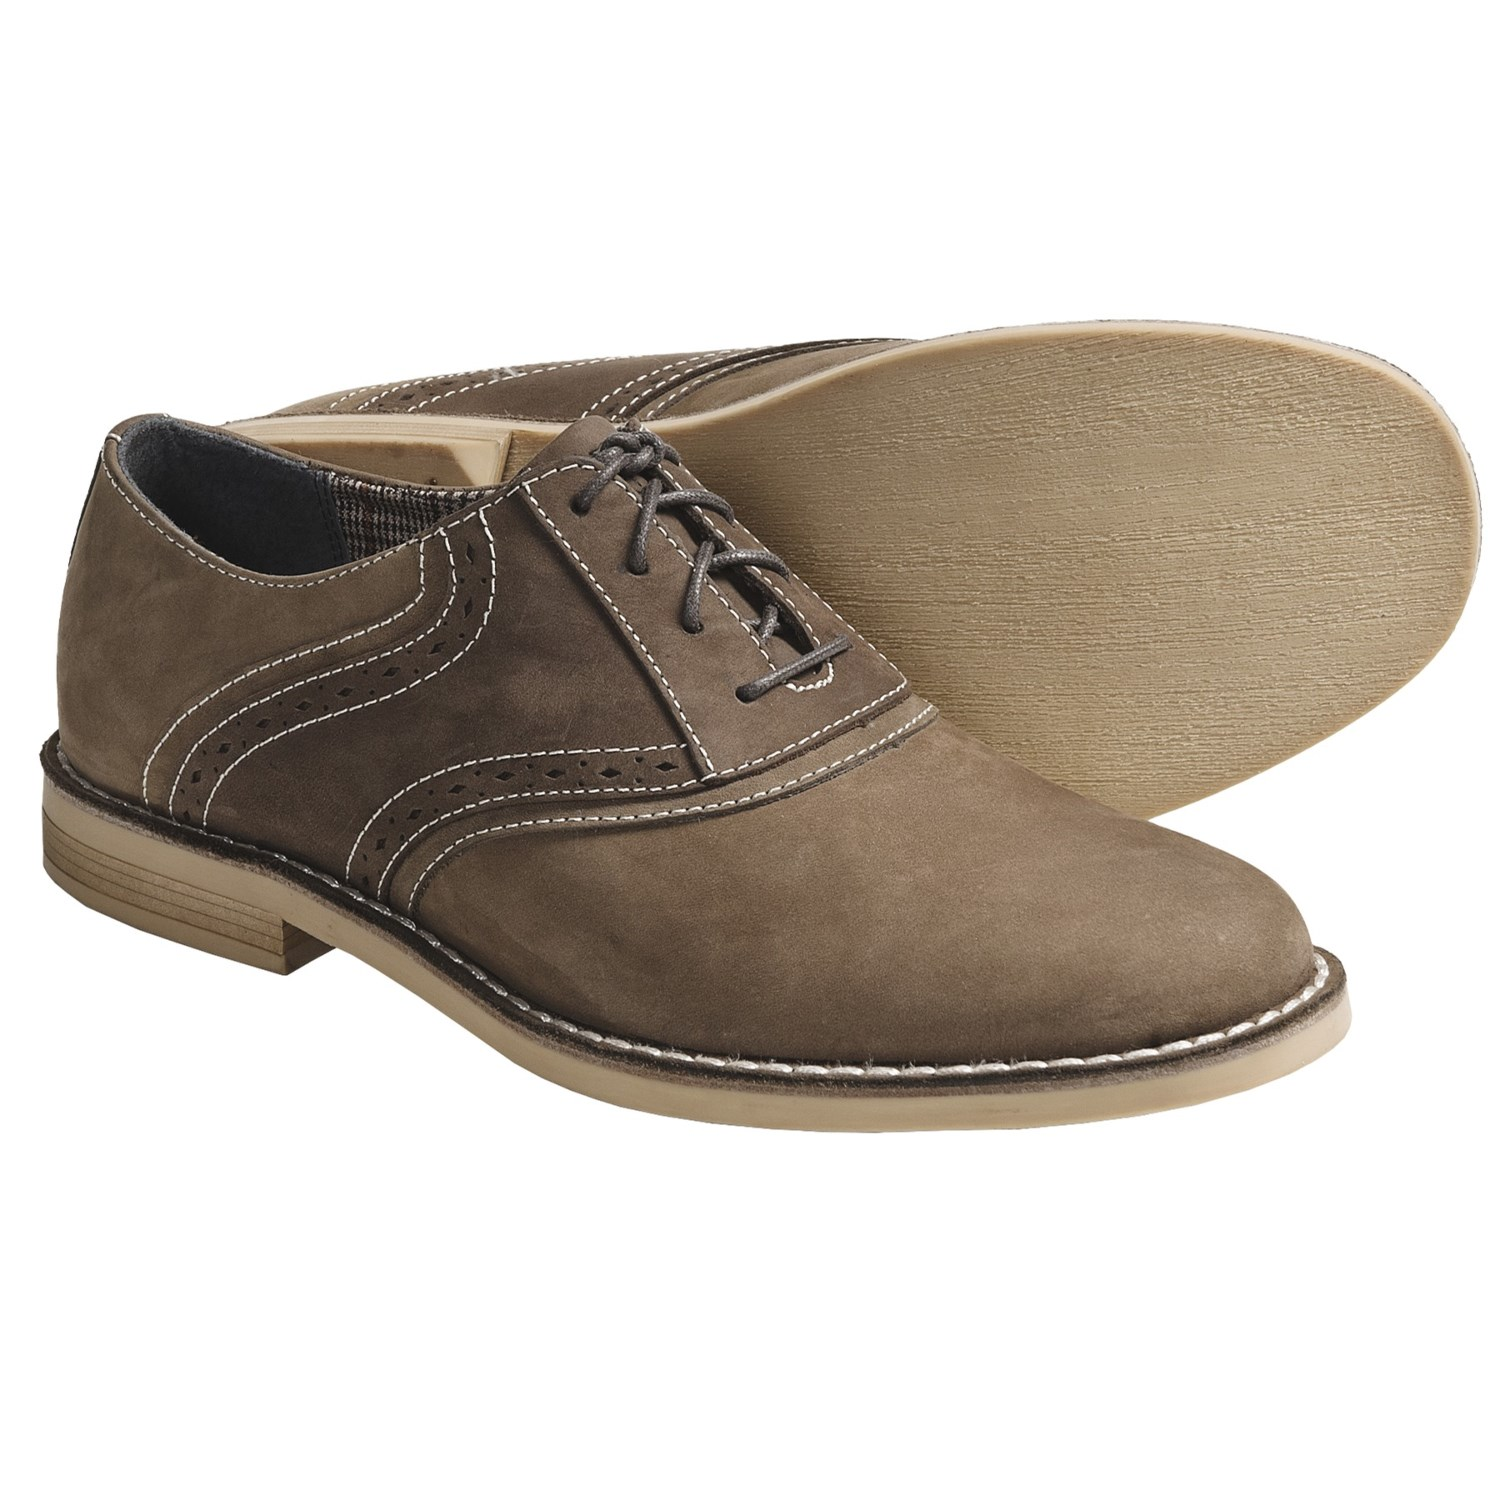 Nordstrom Mens Metallic Oxford Shoes